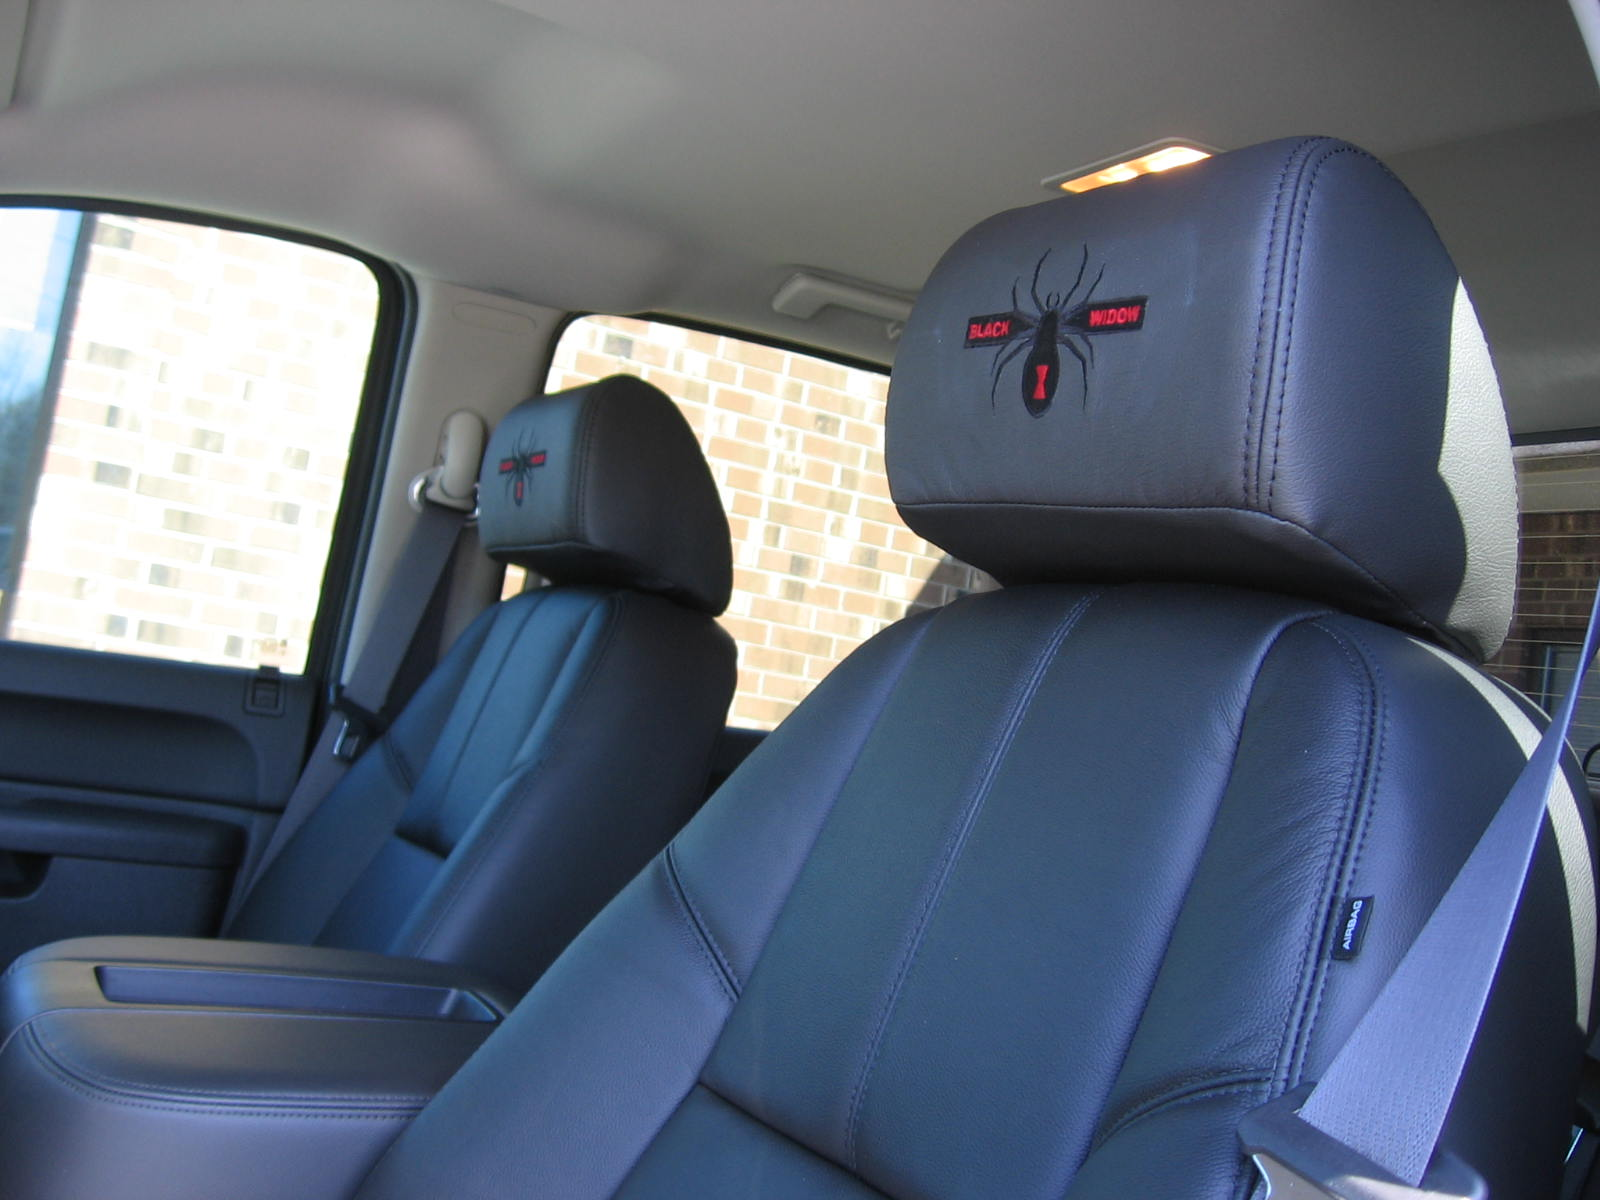 vann york chevrolet buick gmc cadillac check out this all new 2012 chevy silverado black widow. Black Bedroom Furniture Sets. Home Design Ideas